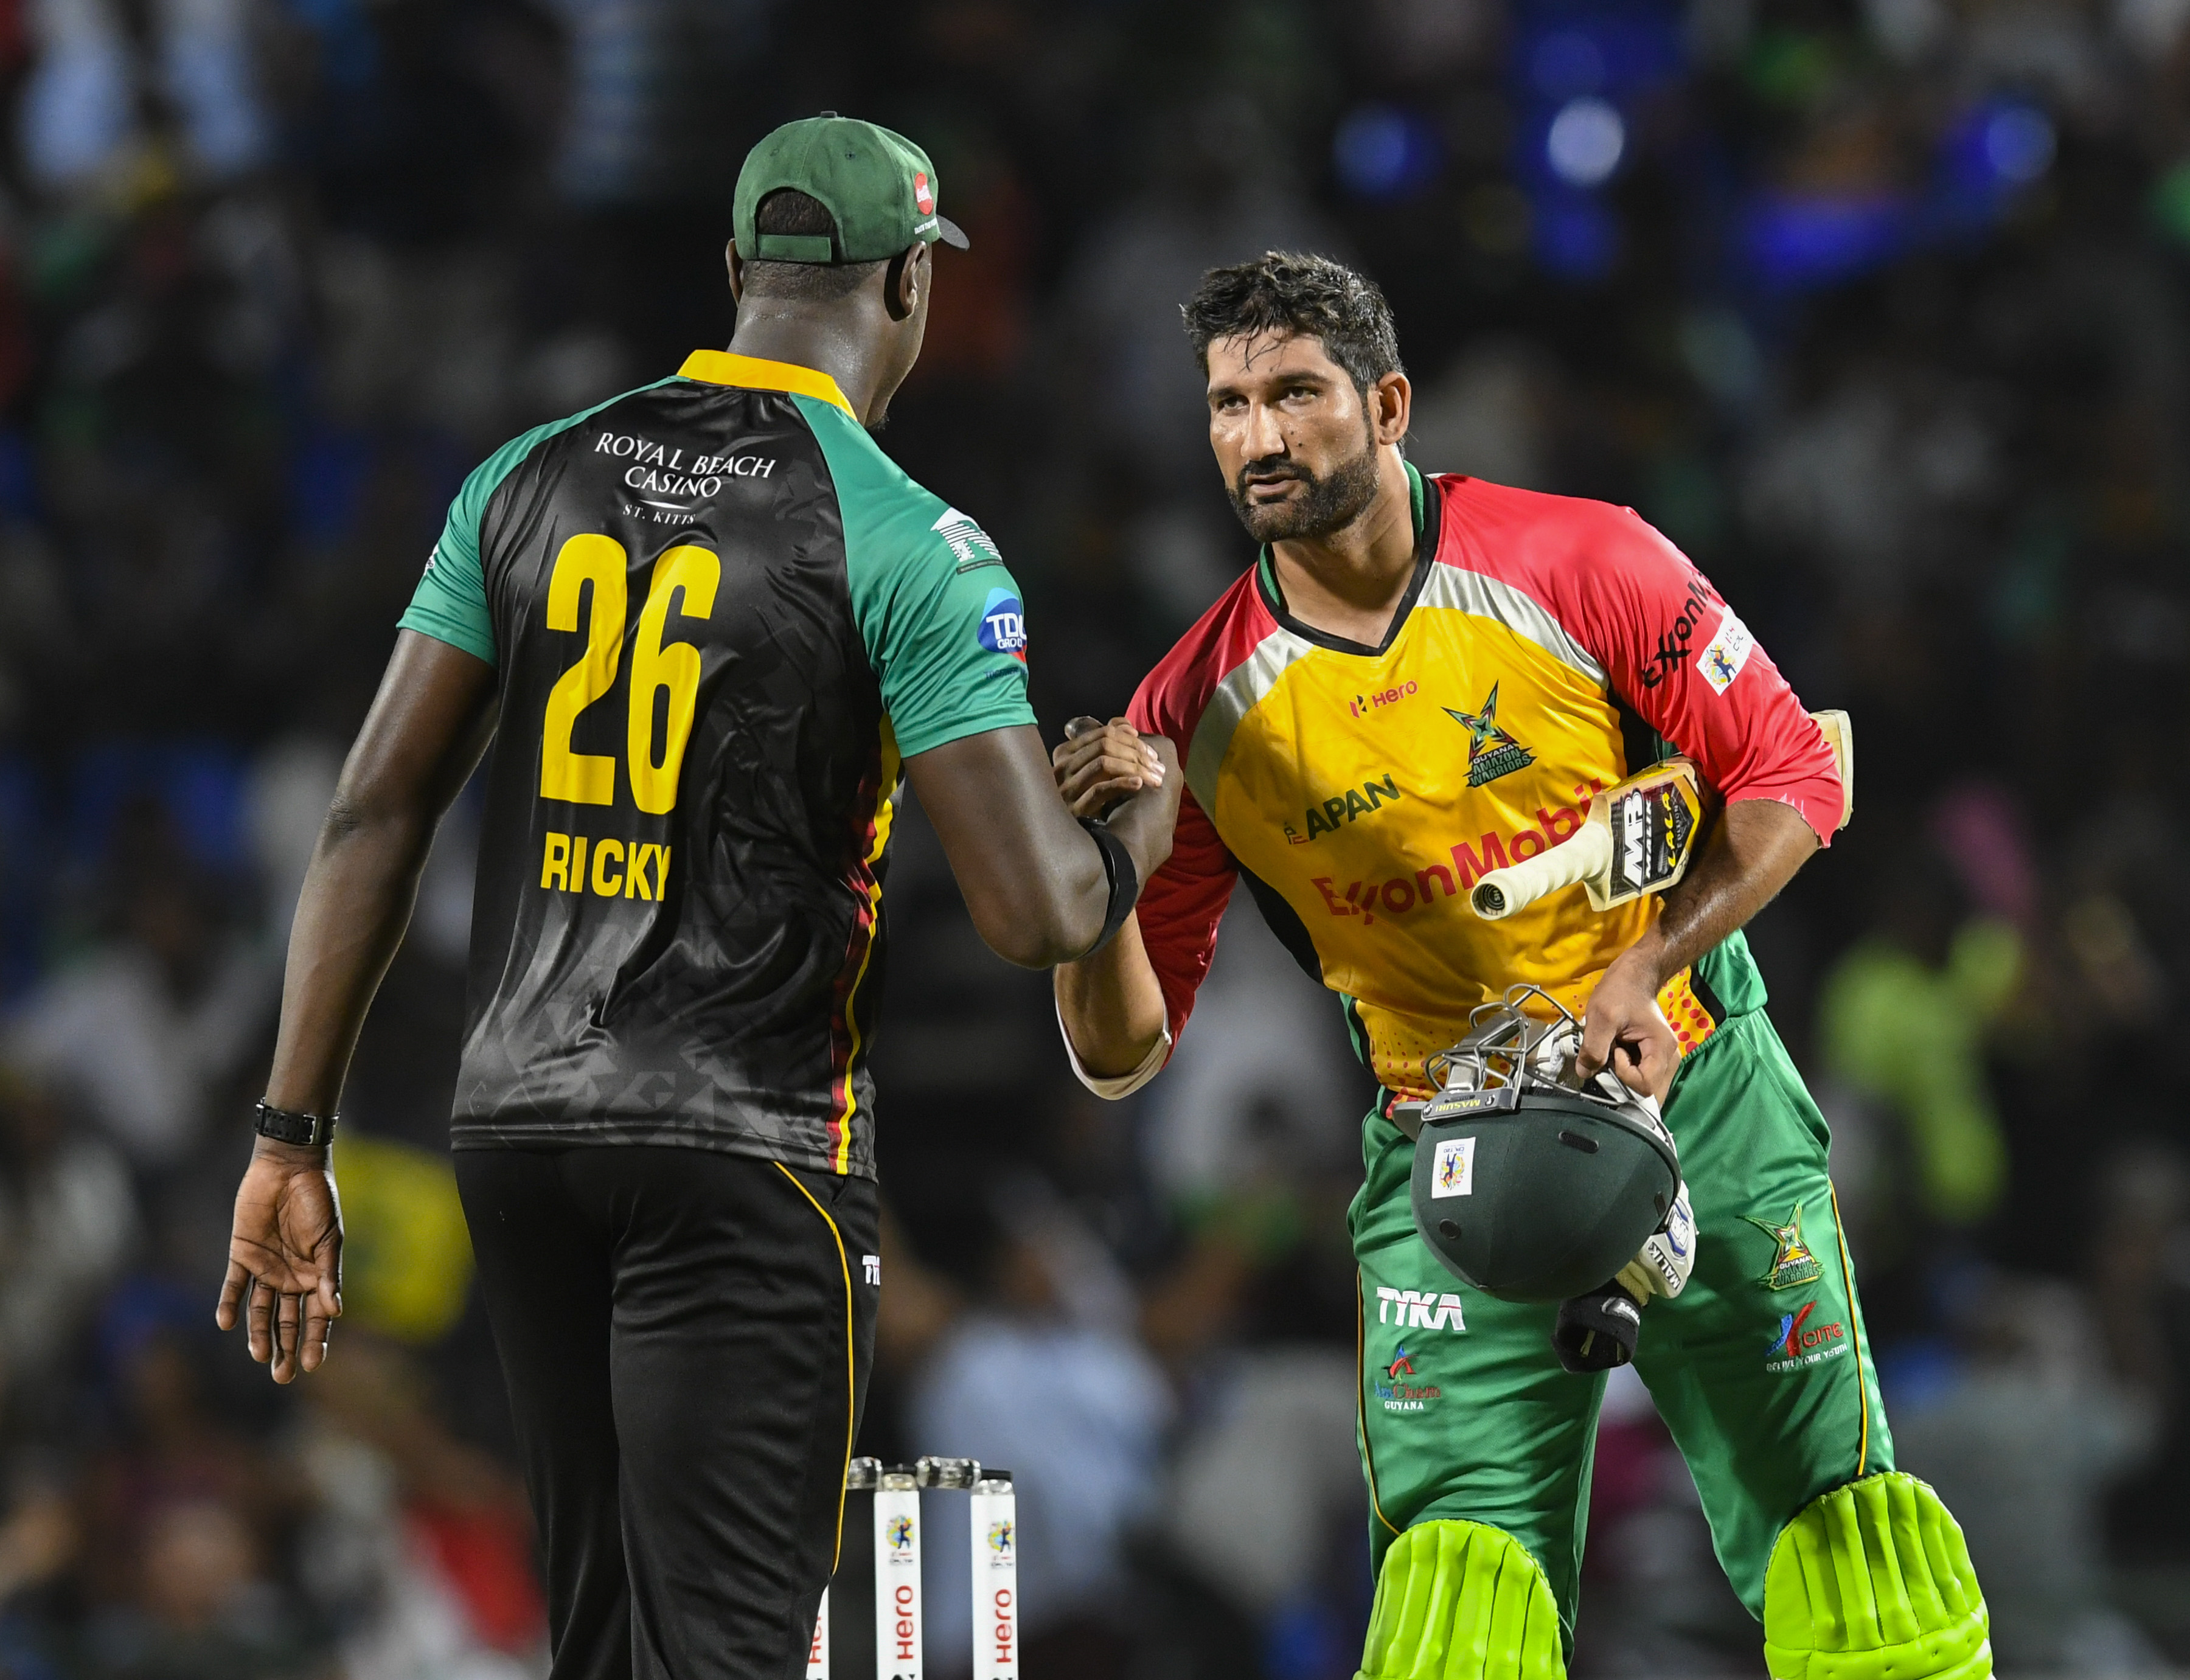 CPL 2021: 2nd semi-final, Guyana Amazon Warriors vs St Kitts and Nevis Patriots - Preview, Predicted XIs, Match Prediction, Live Streaming, Weather Forecast, and Pitch Report